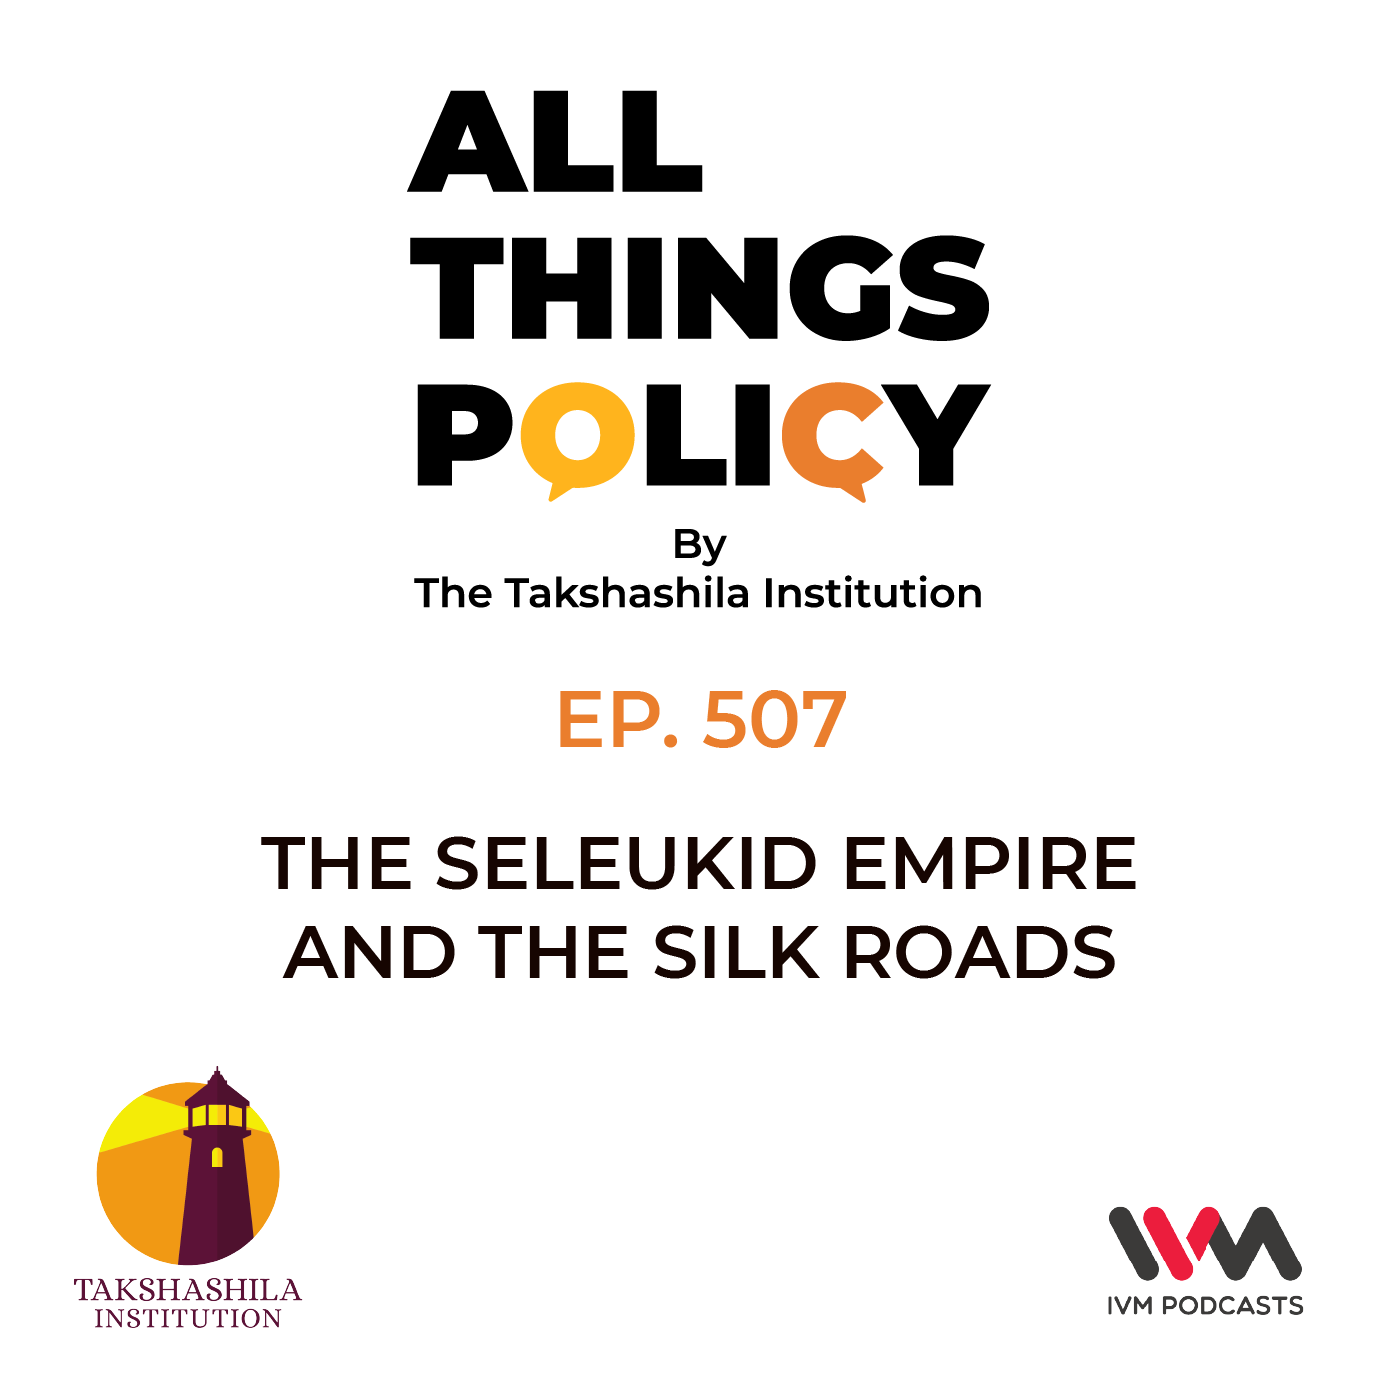 Ep. 507: The Seleukid Empire and the Silk Roads